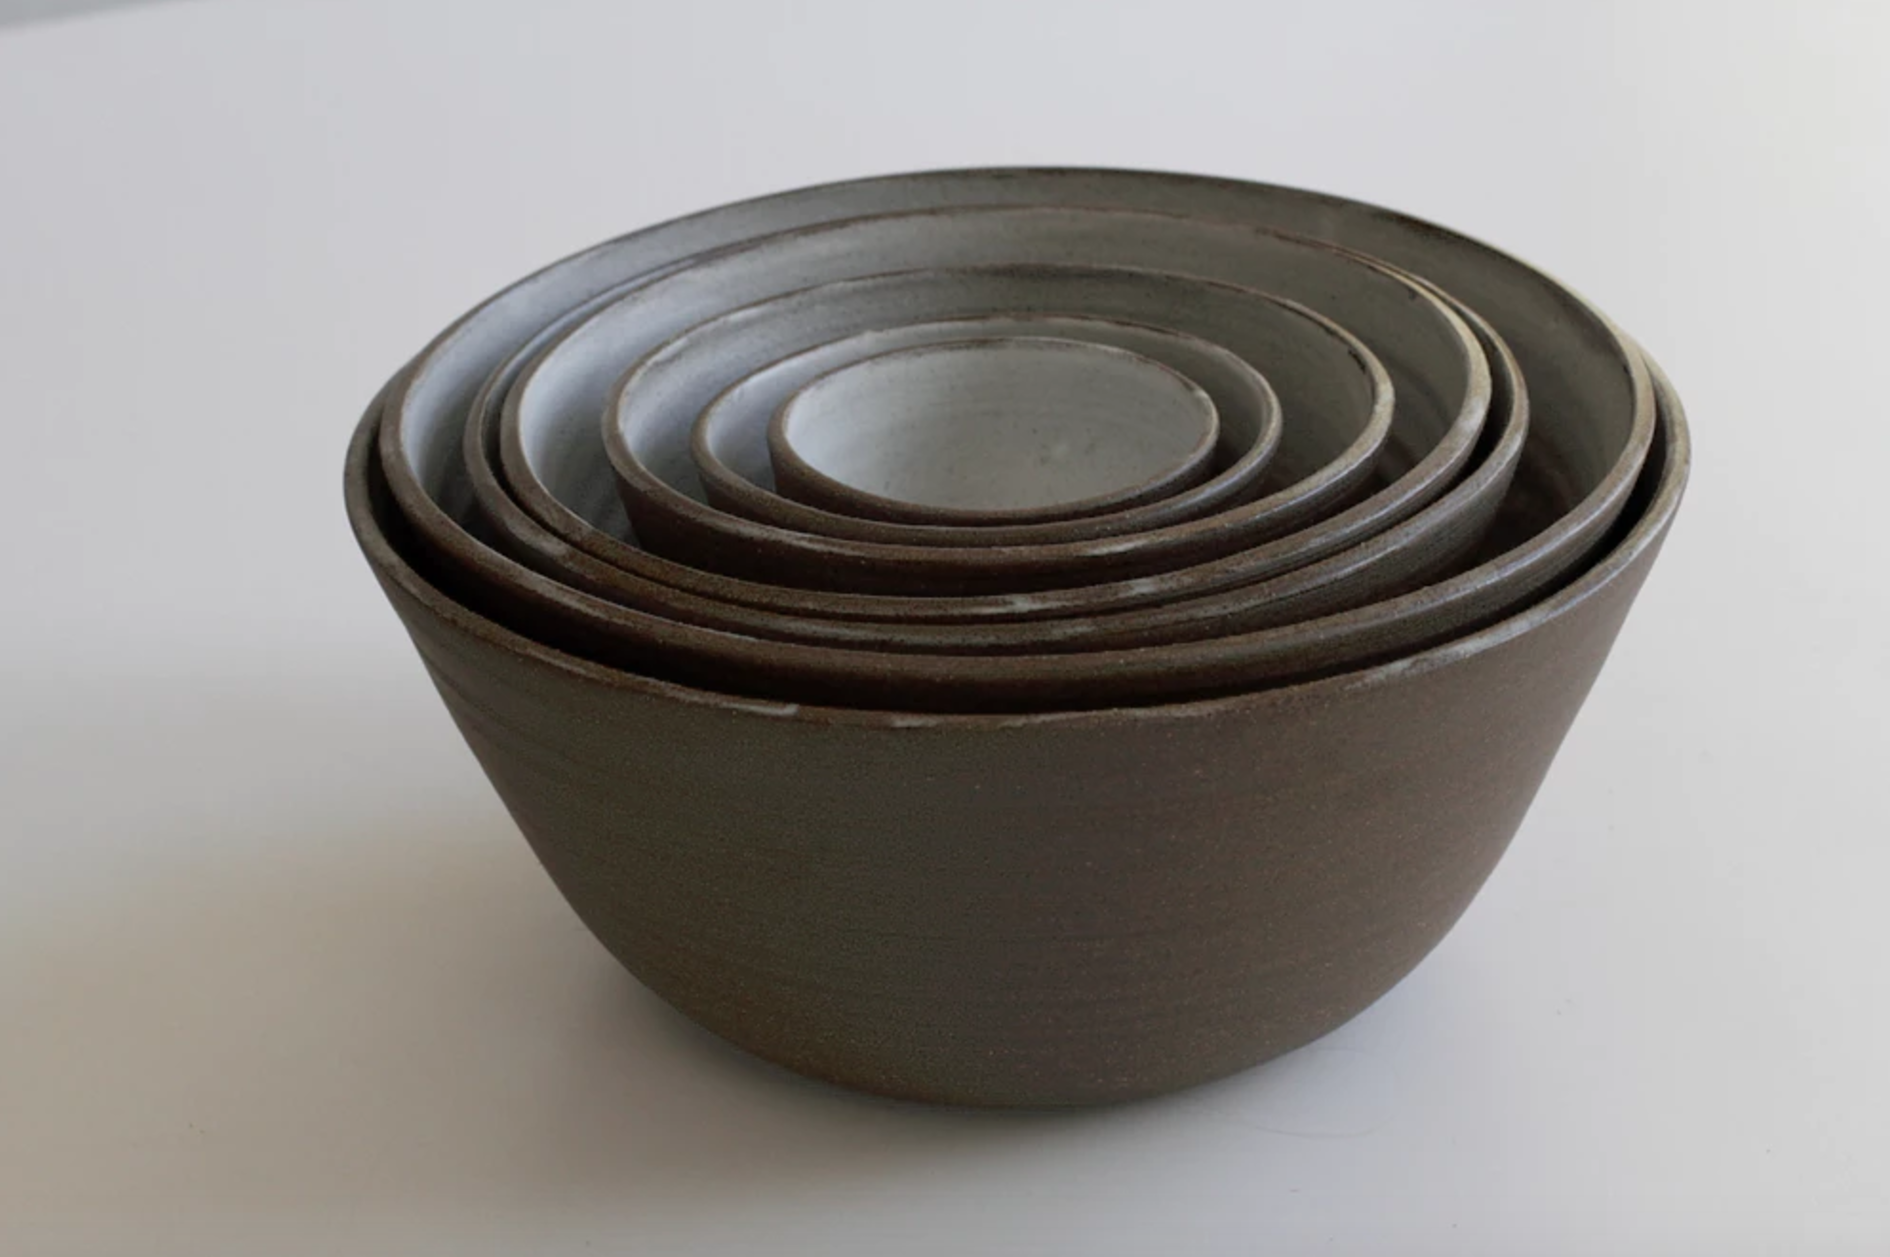 Seven Nesting Bowls by Kelli Cain